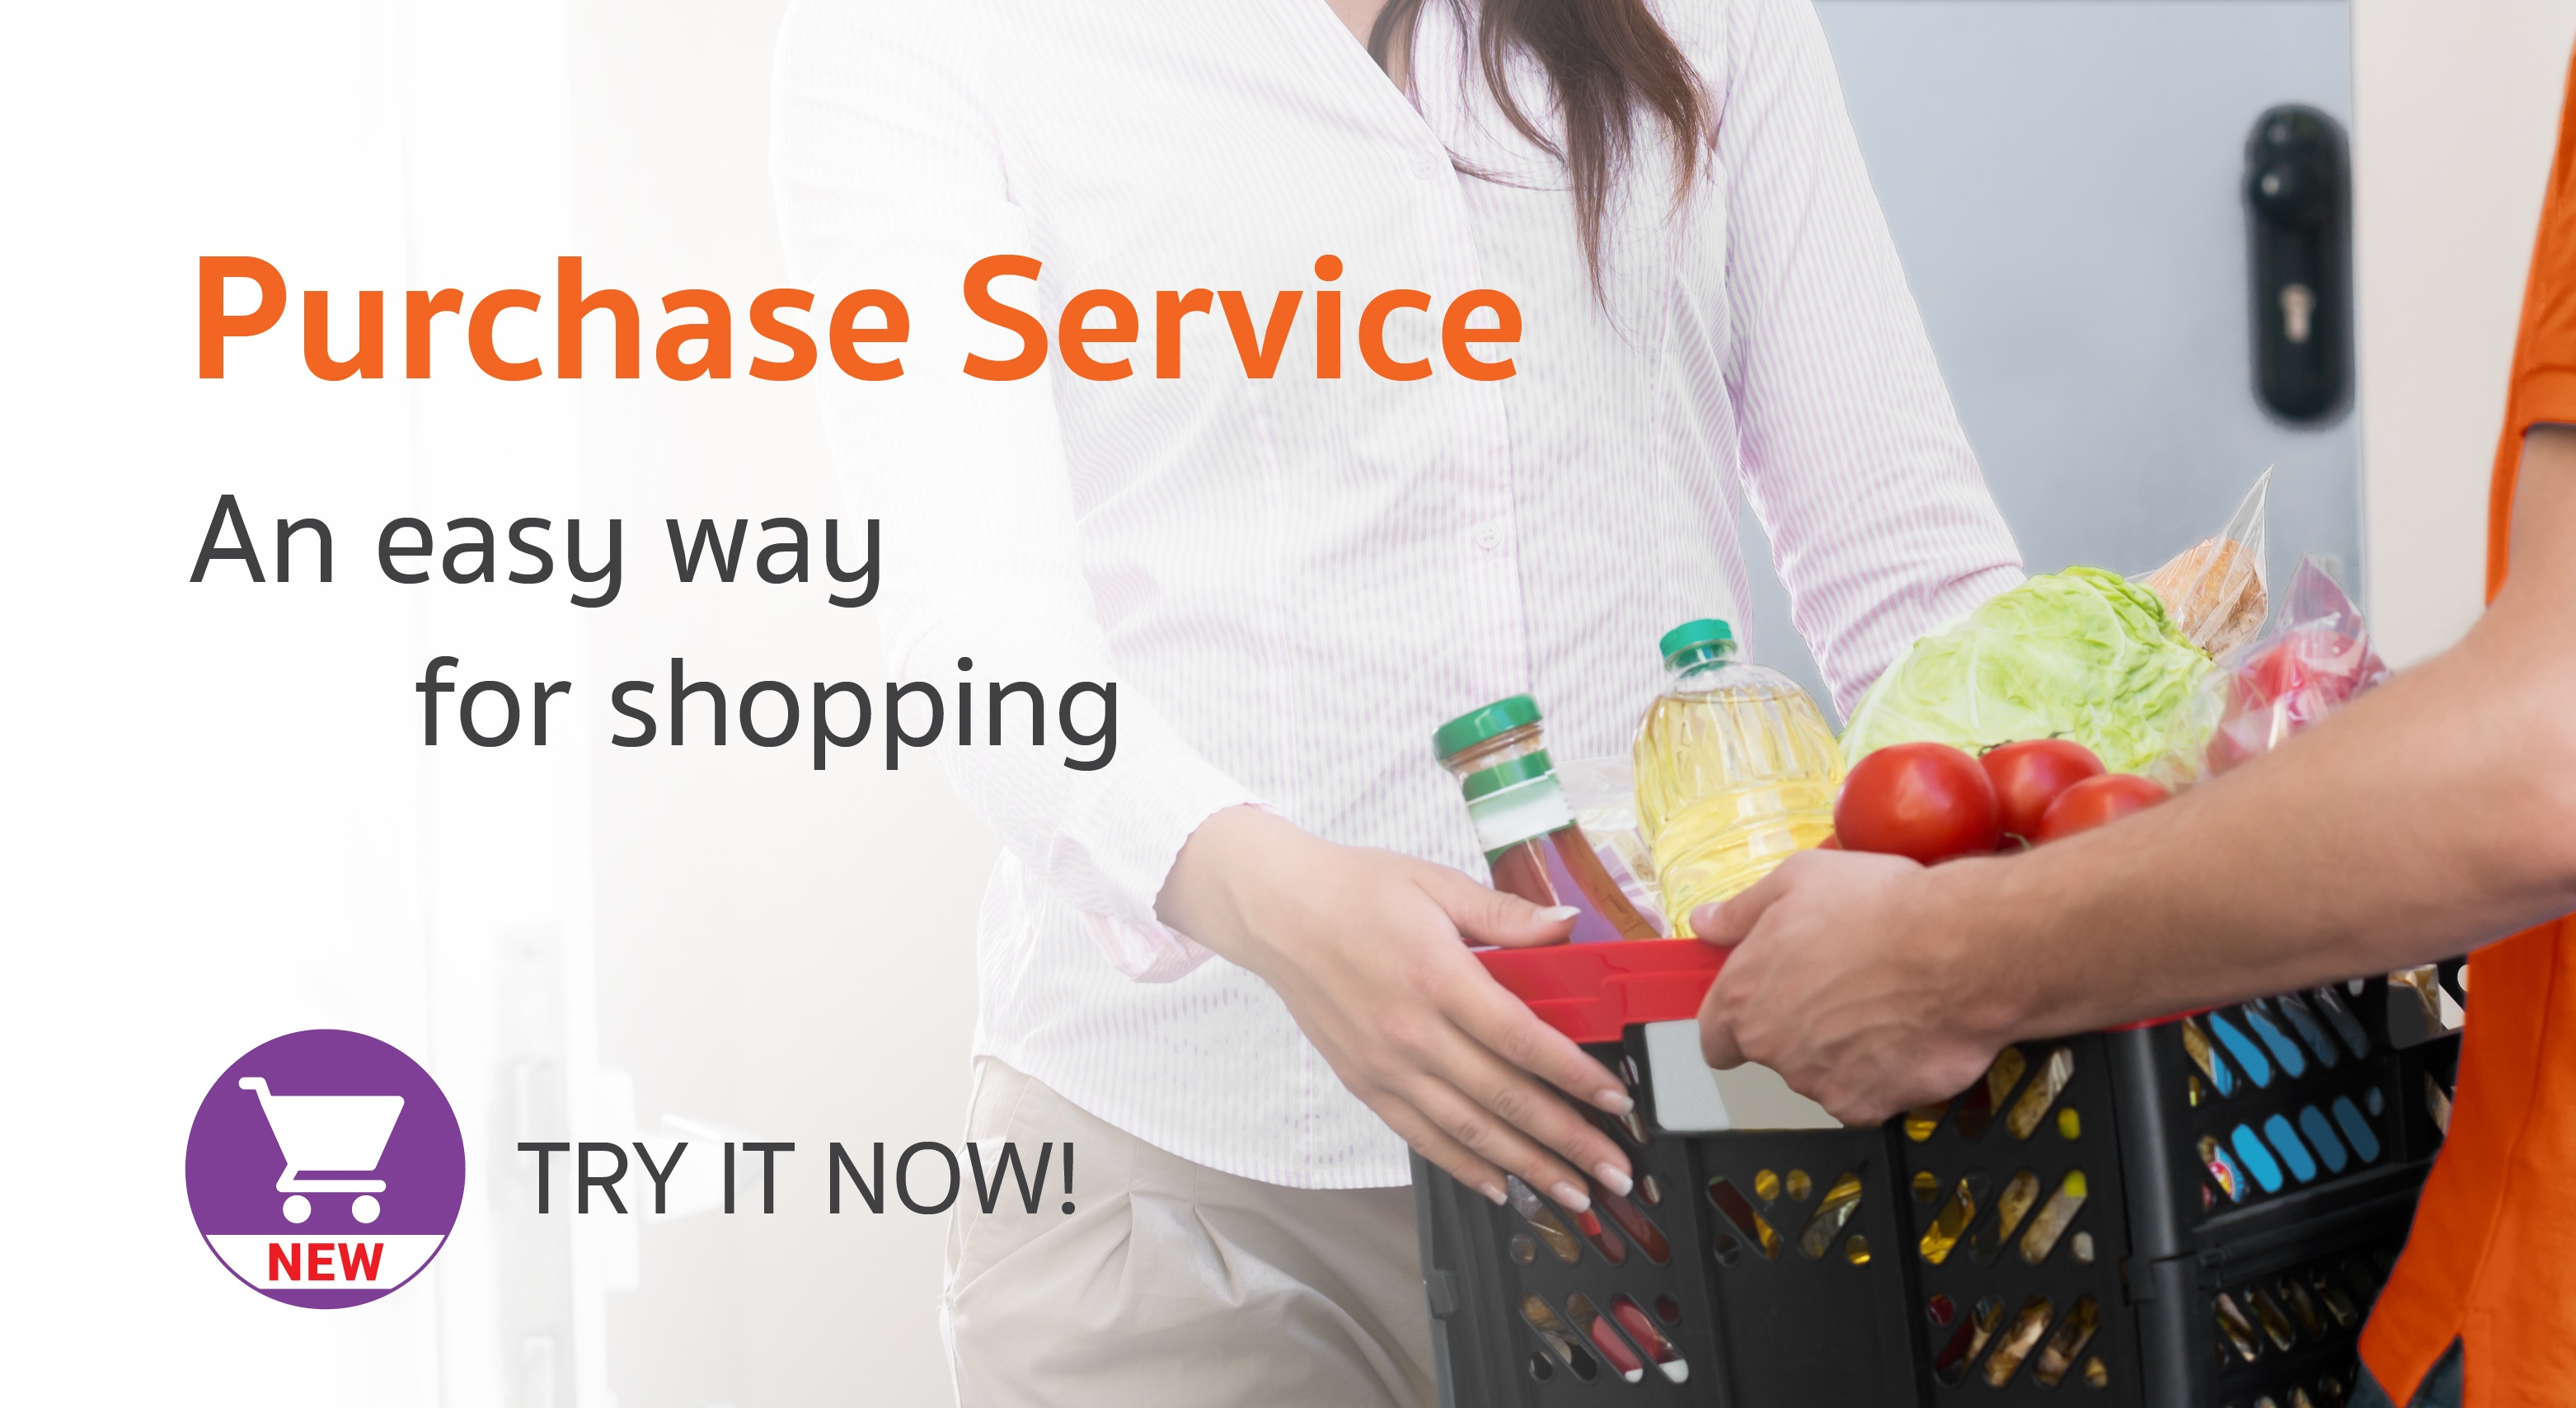 """""""Purchase Service"""", the shopping assistance that fits with the demands of busy customers in Bangkok"""